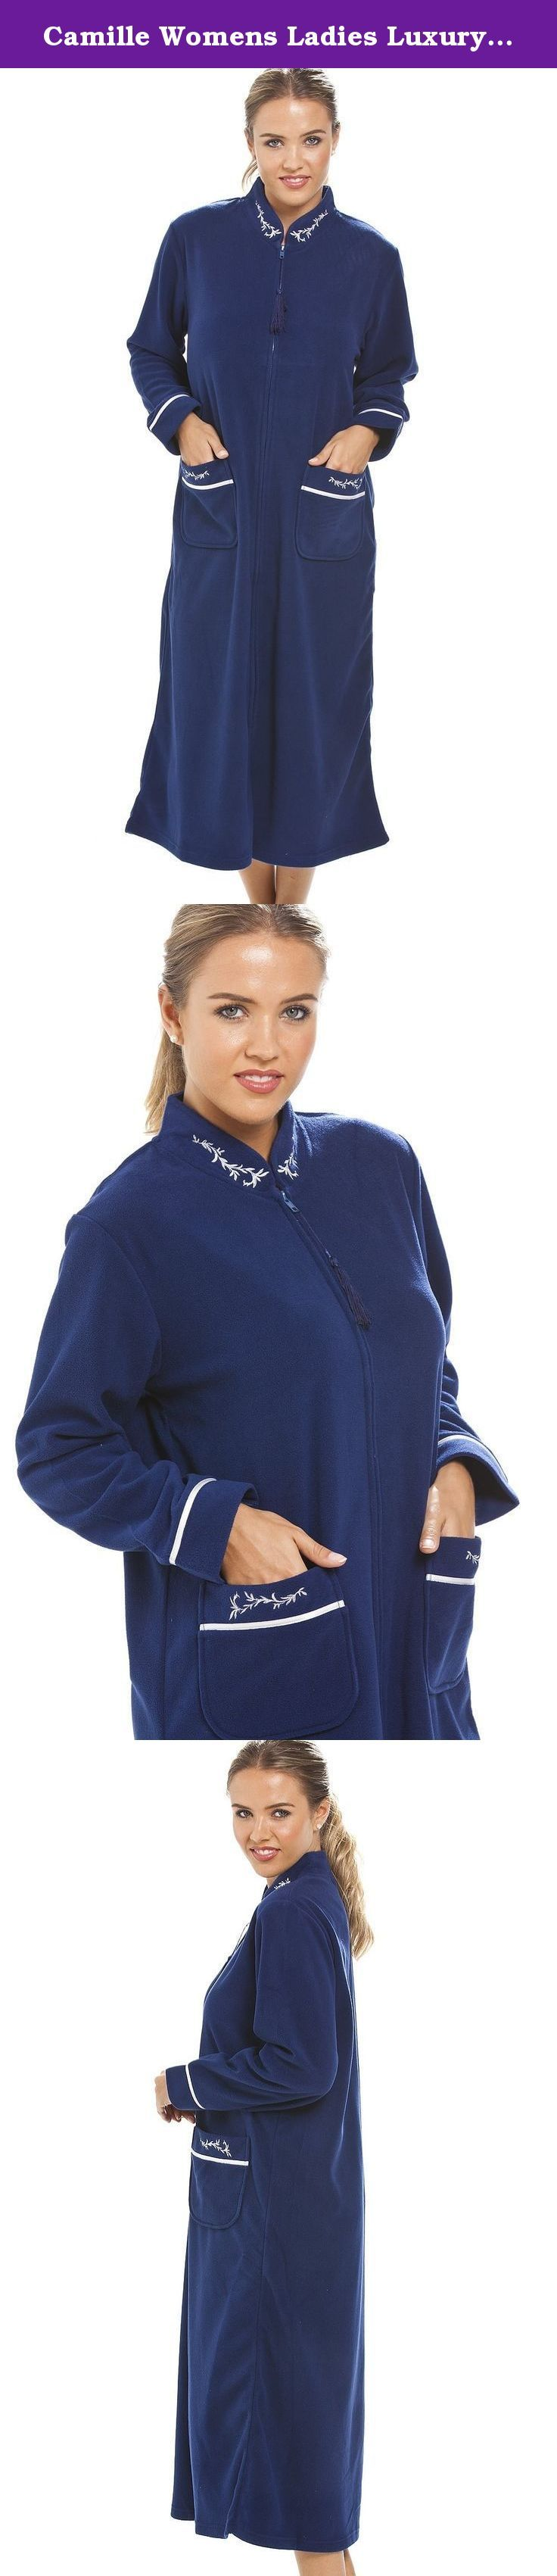 Camille Womens Ladies Luxury Navy Blue Zip Up Housecoat Bath Robe 14/16 BLUE. Brand New At Camille! The Pockets And The Collar On This Classic Housecoat Feature A Pretty Floral Design.